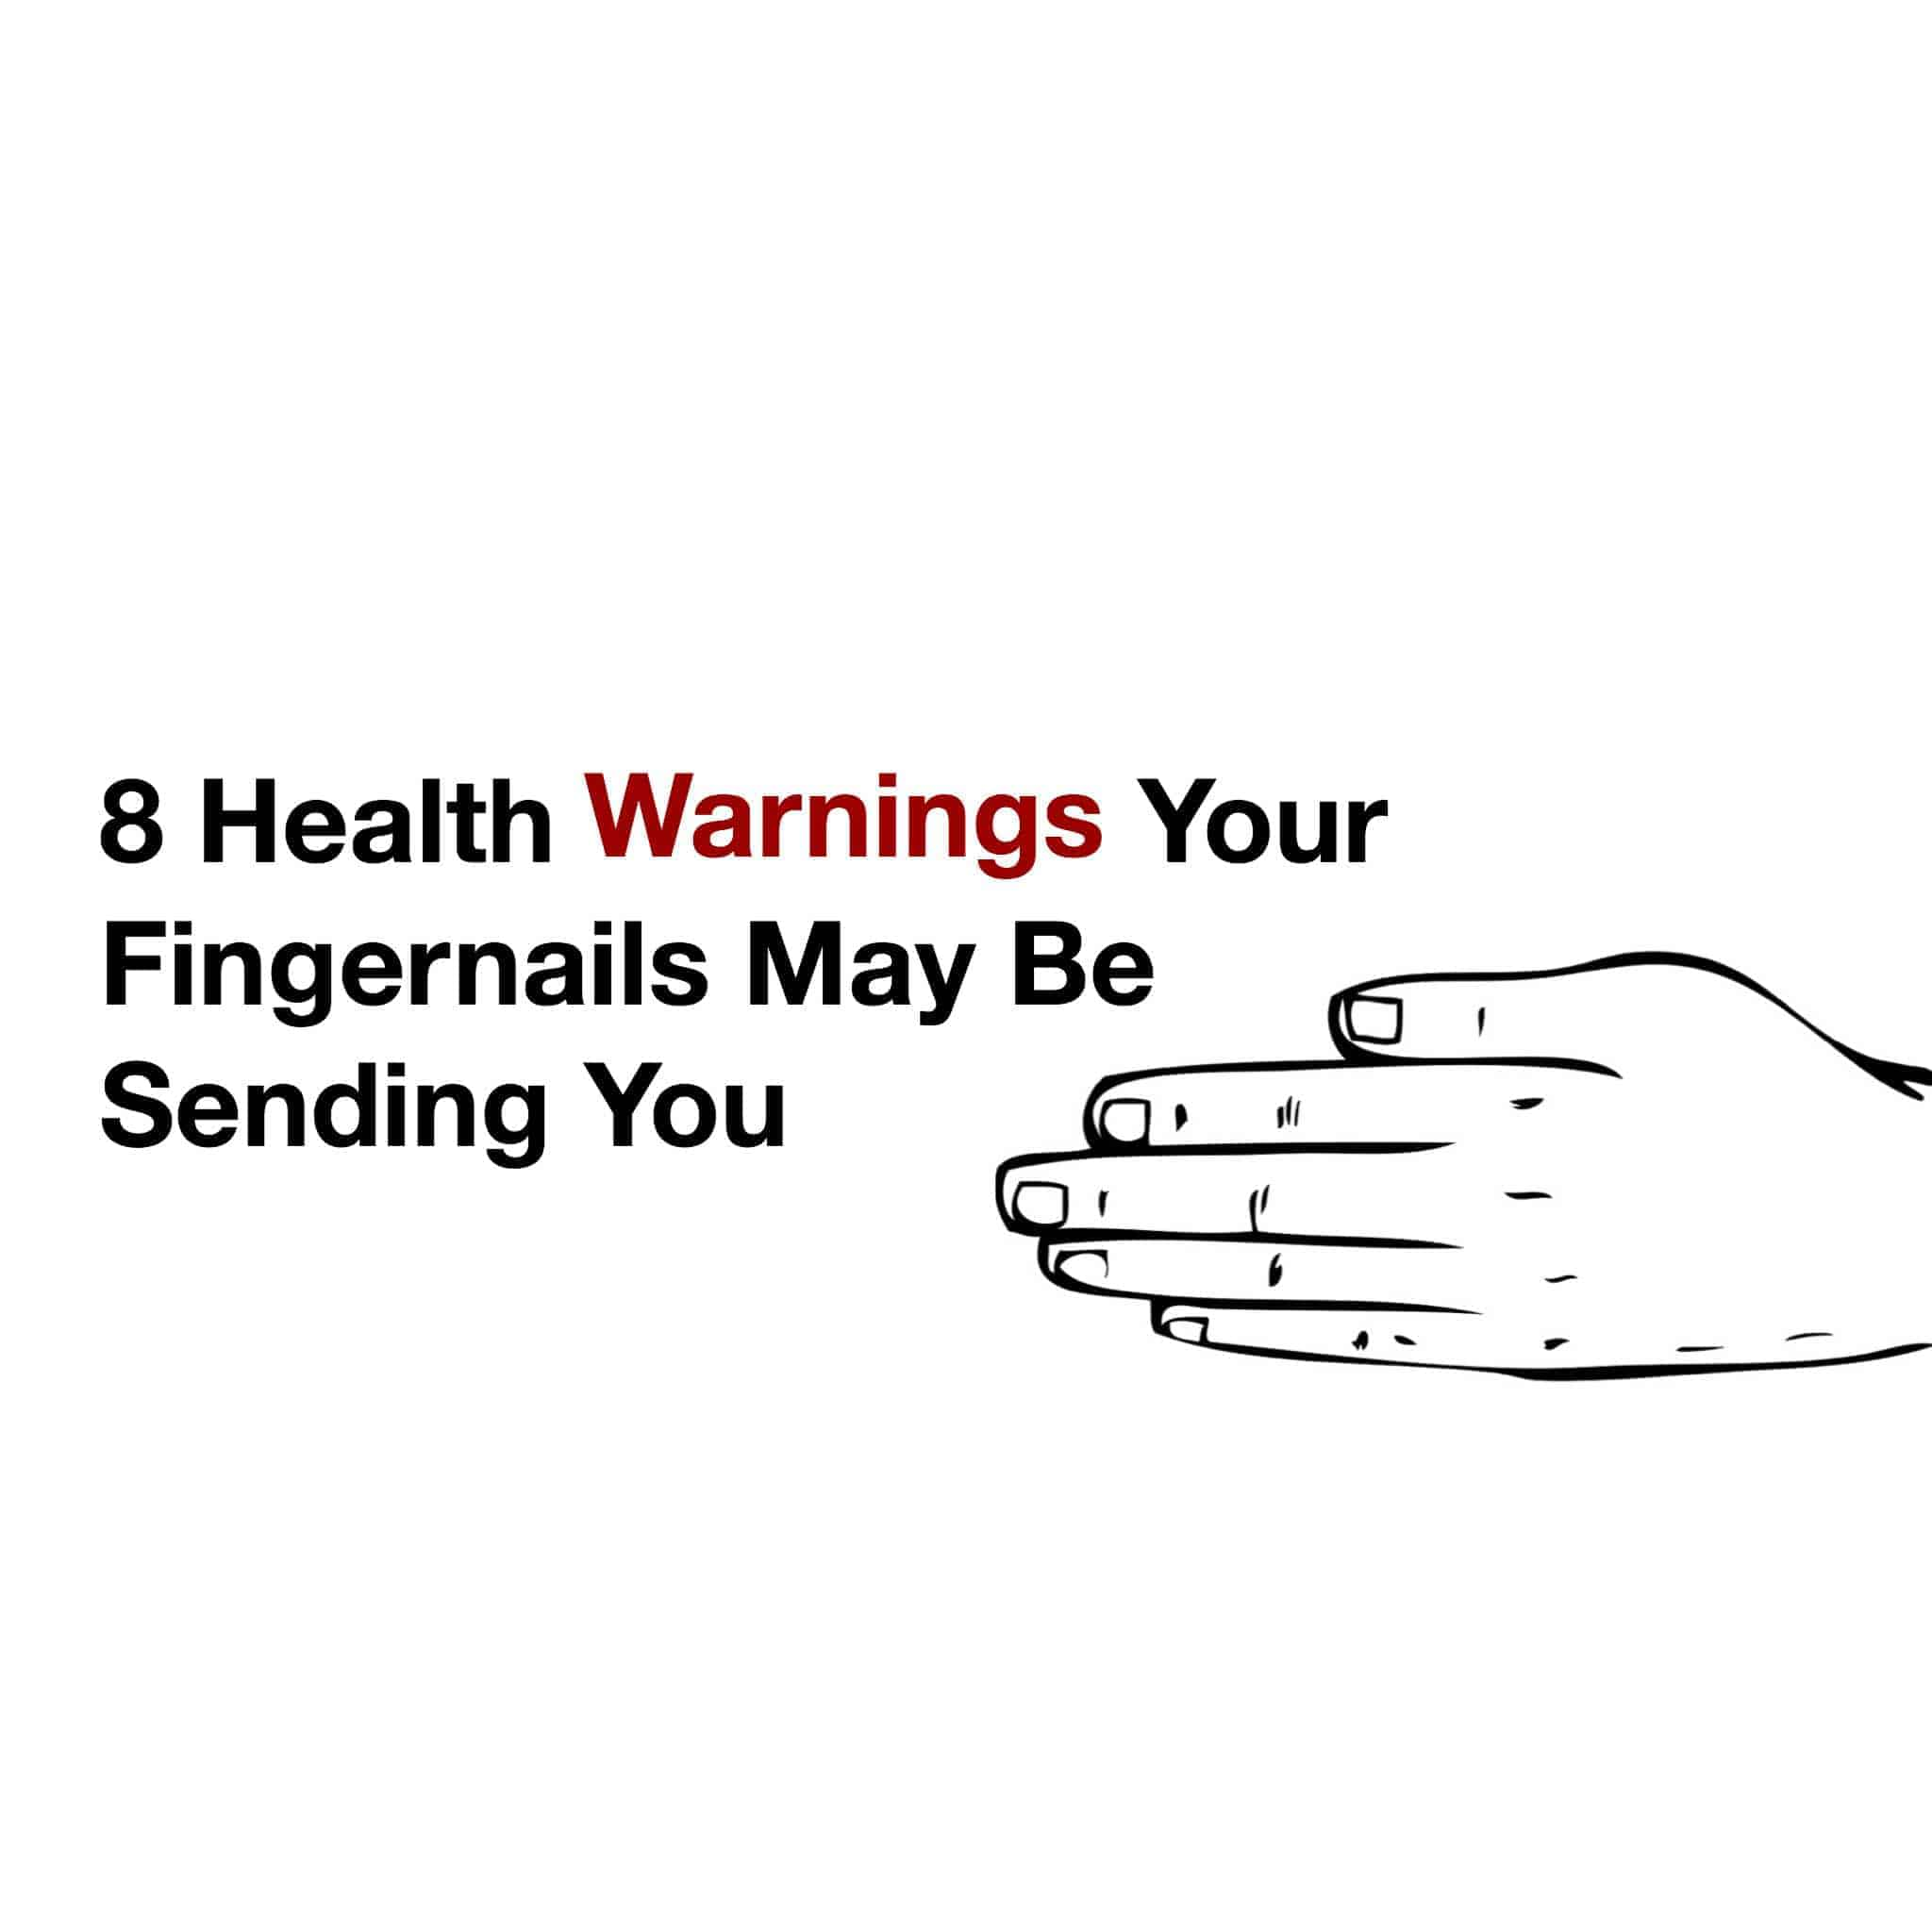 8 Health Warnings Your Fingernails May Be Sending You